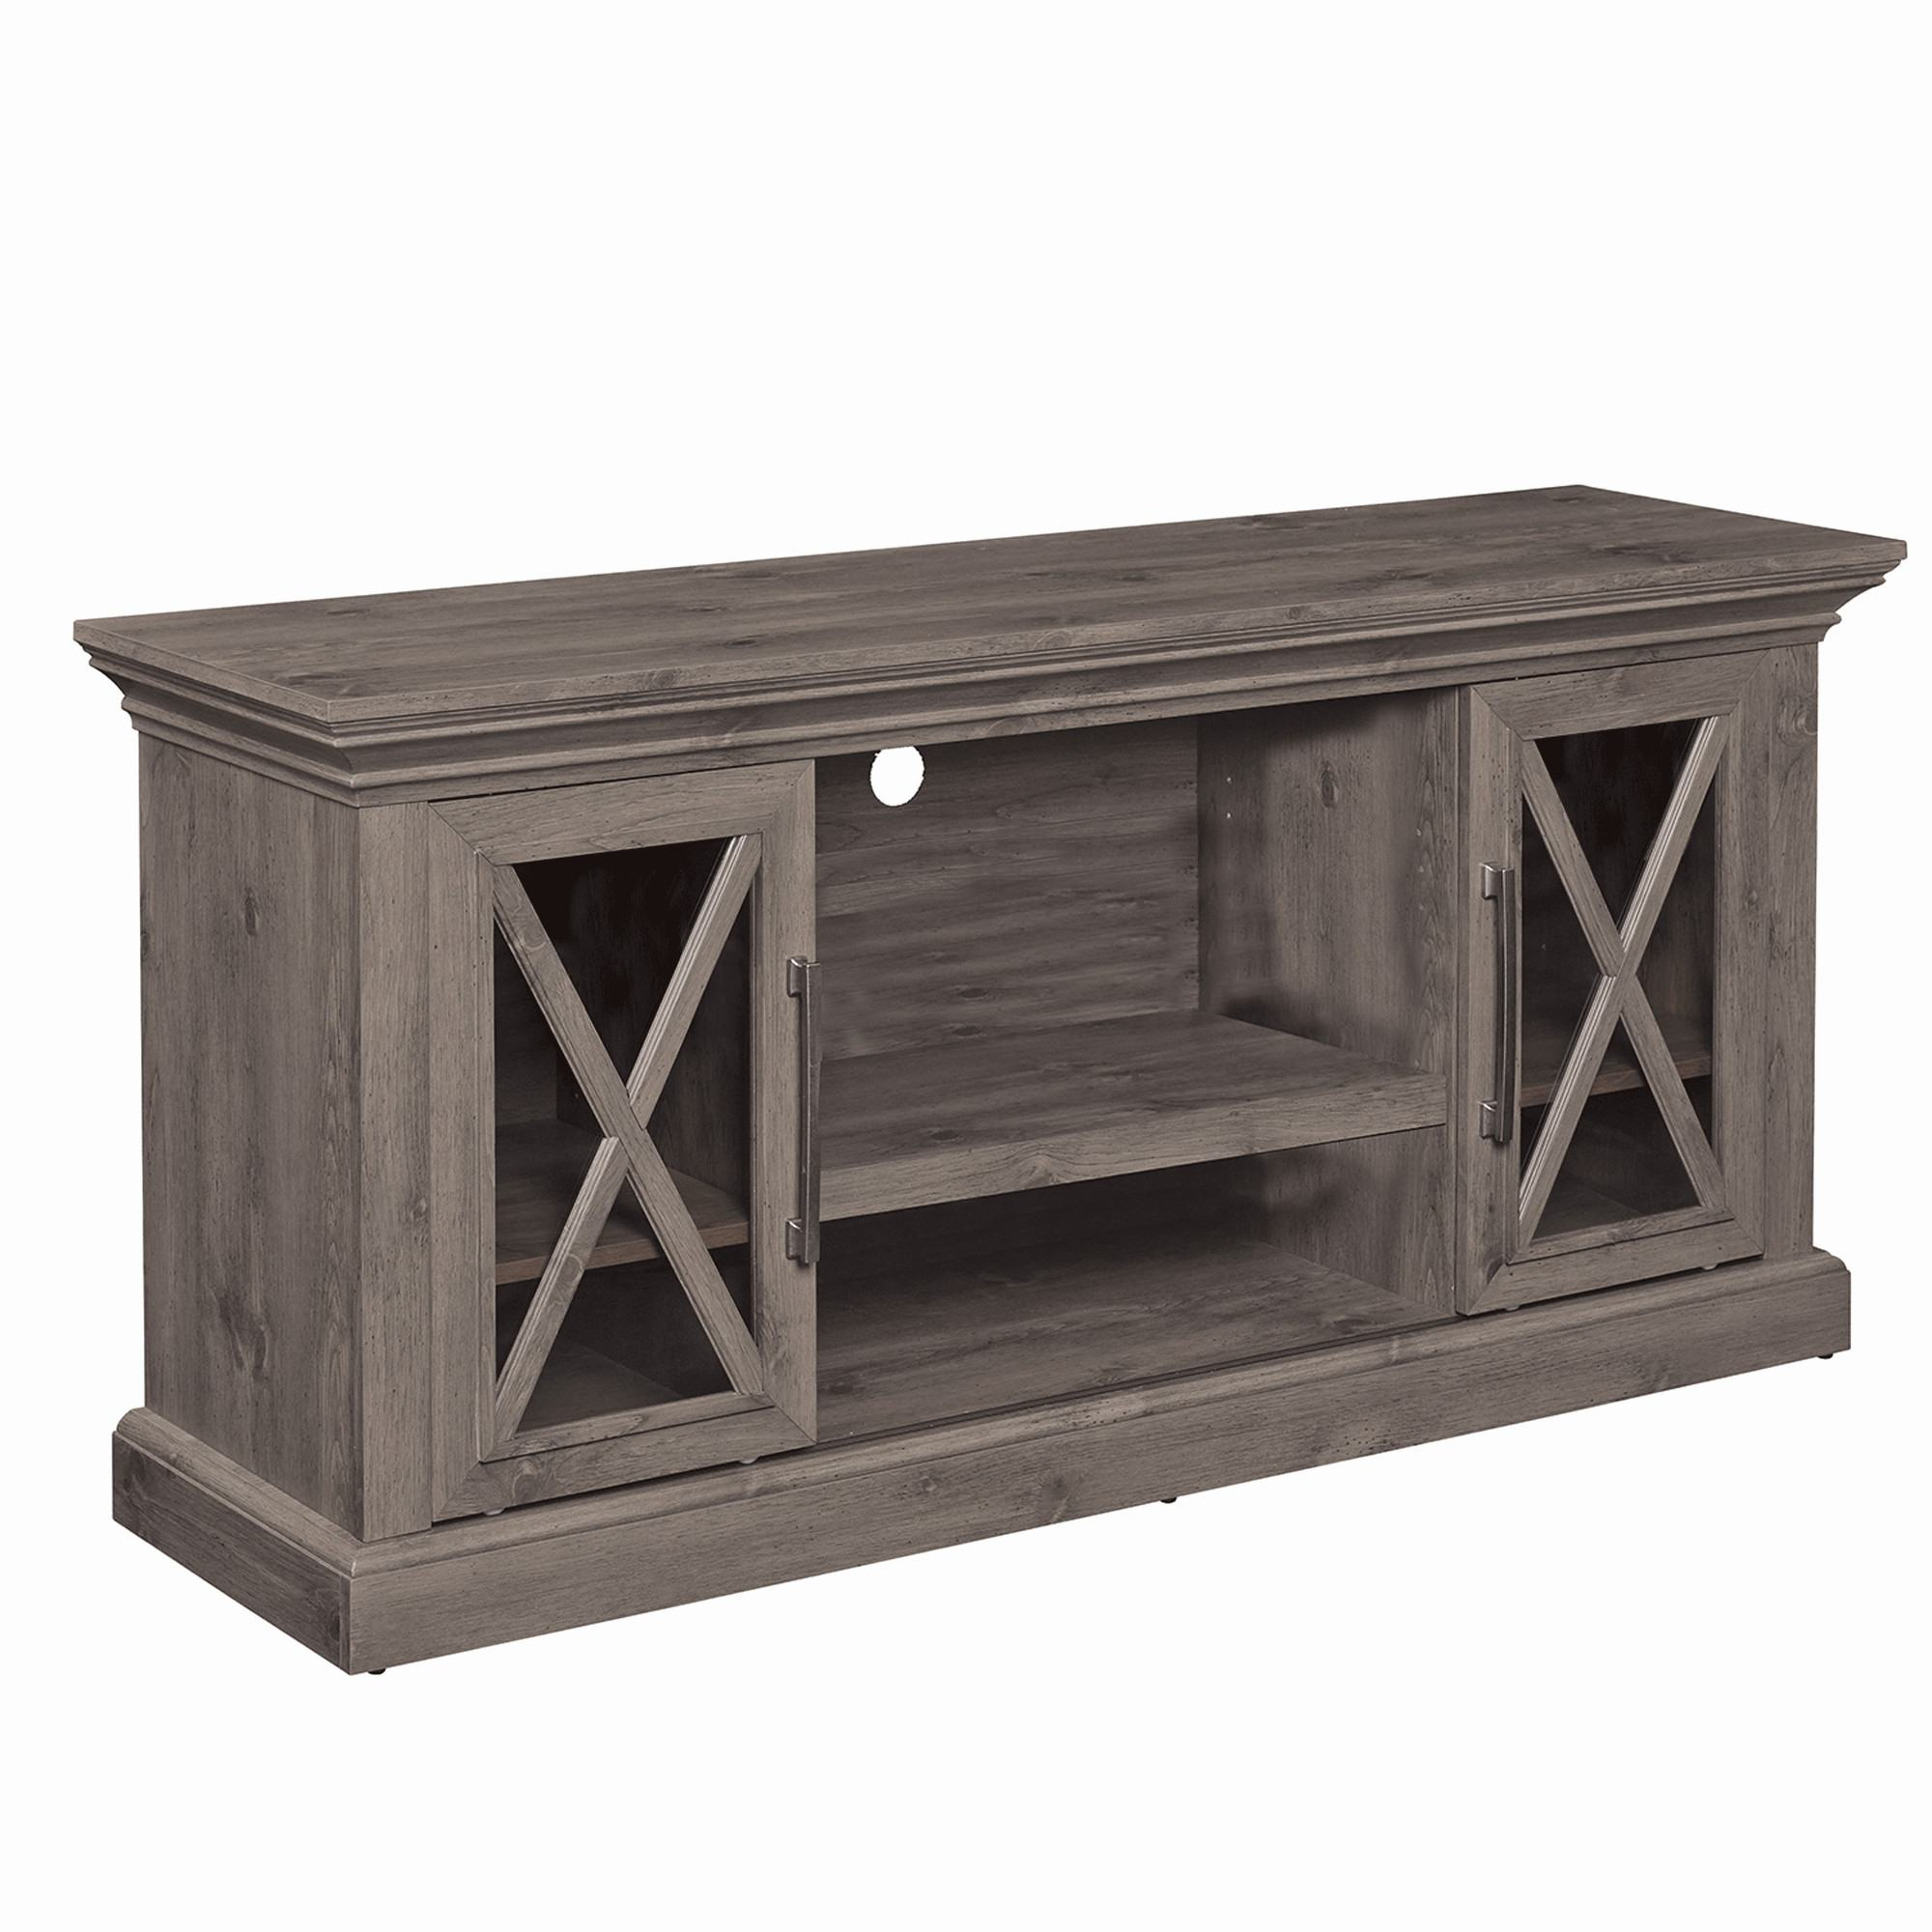 13 Stunning 65 Inch Tv Stand For Your New Living Room inside Jaxon 65 Inch Tv Stands (Image 1 of 30)